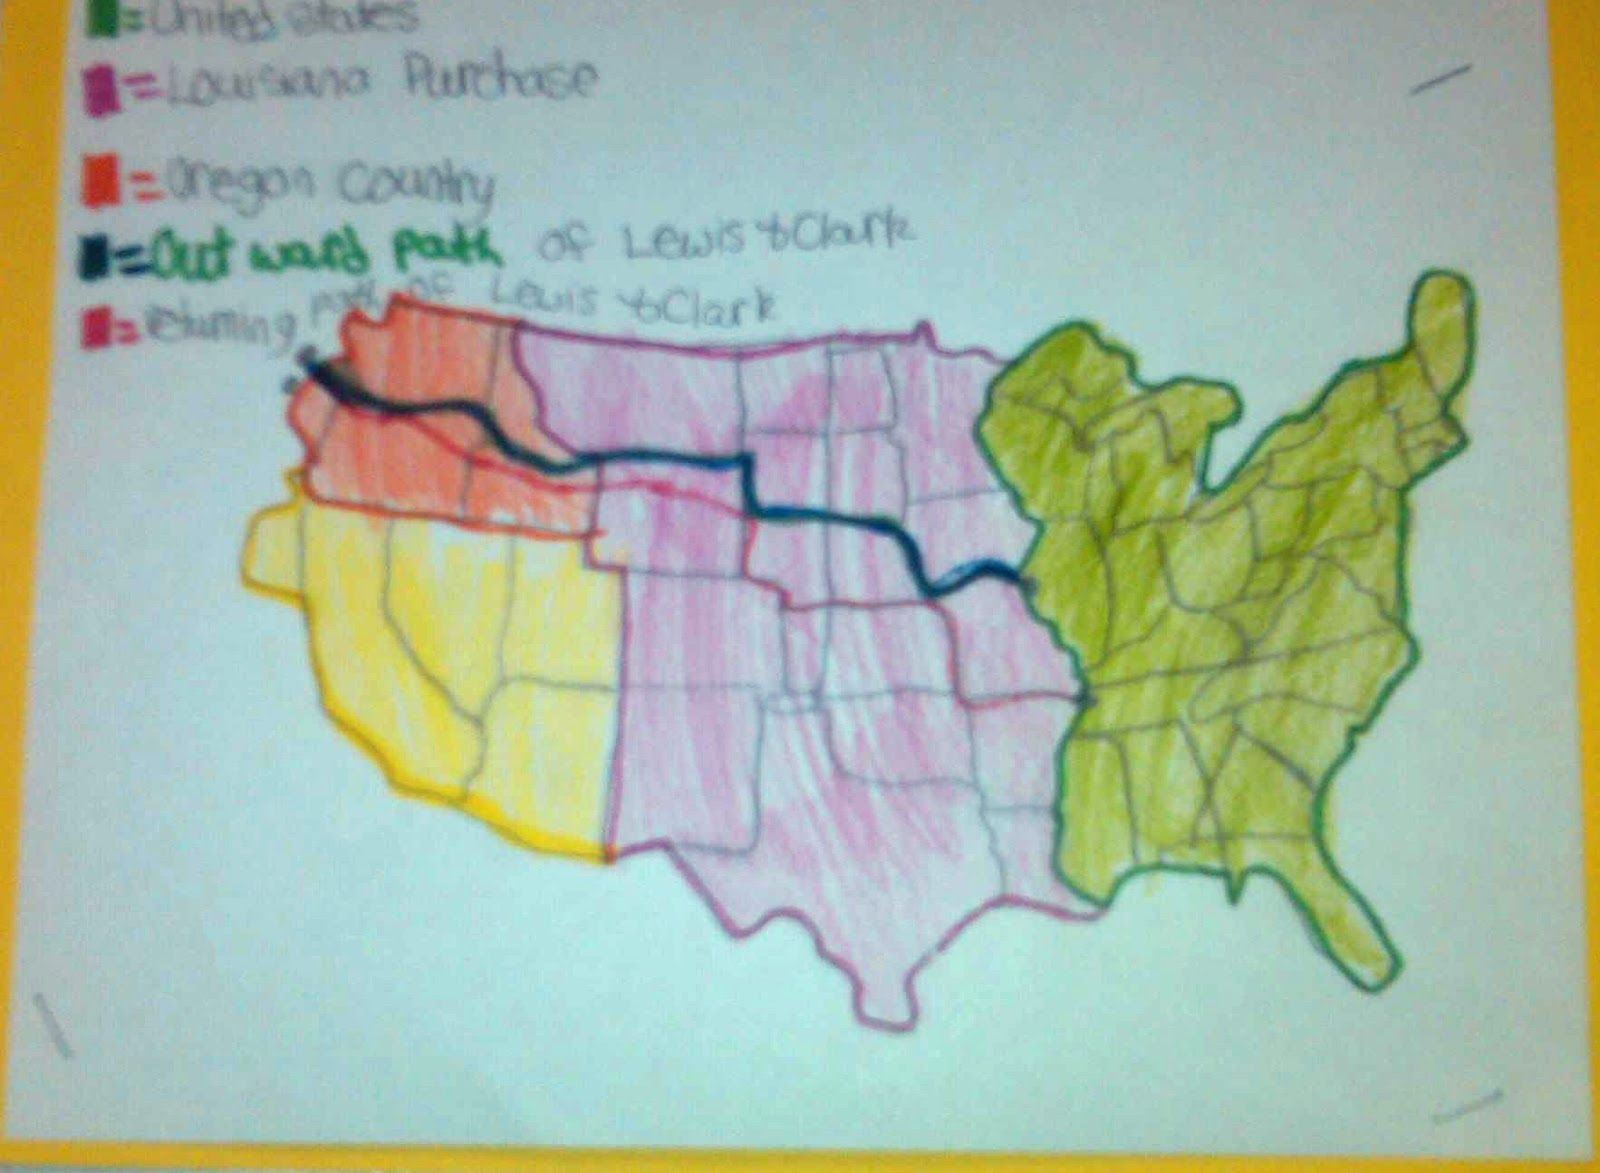 Best Ideas About Lewis And Clark On Pinterest Lewis And - Map of the united states before lewis and clark